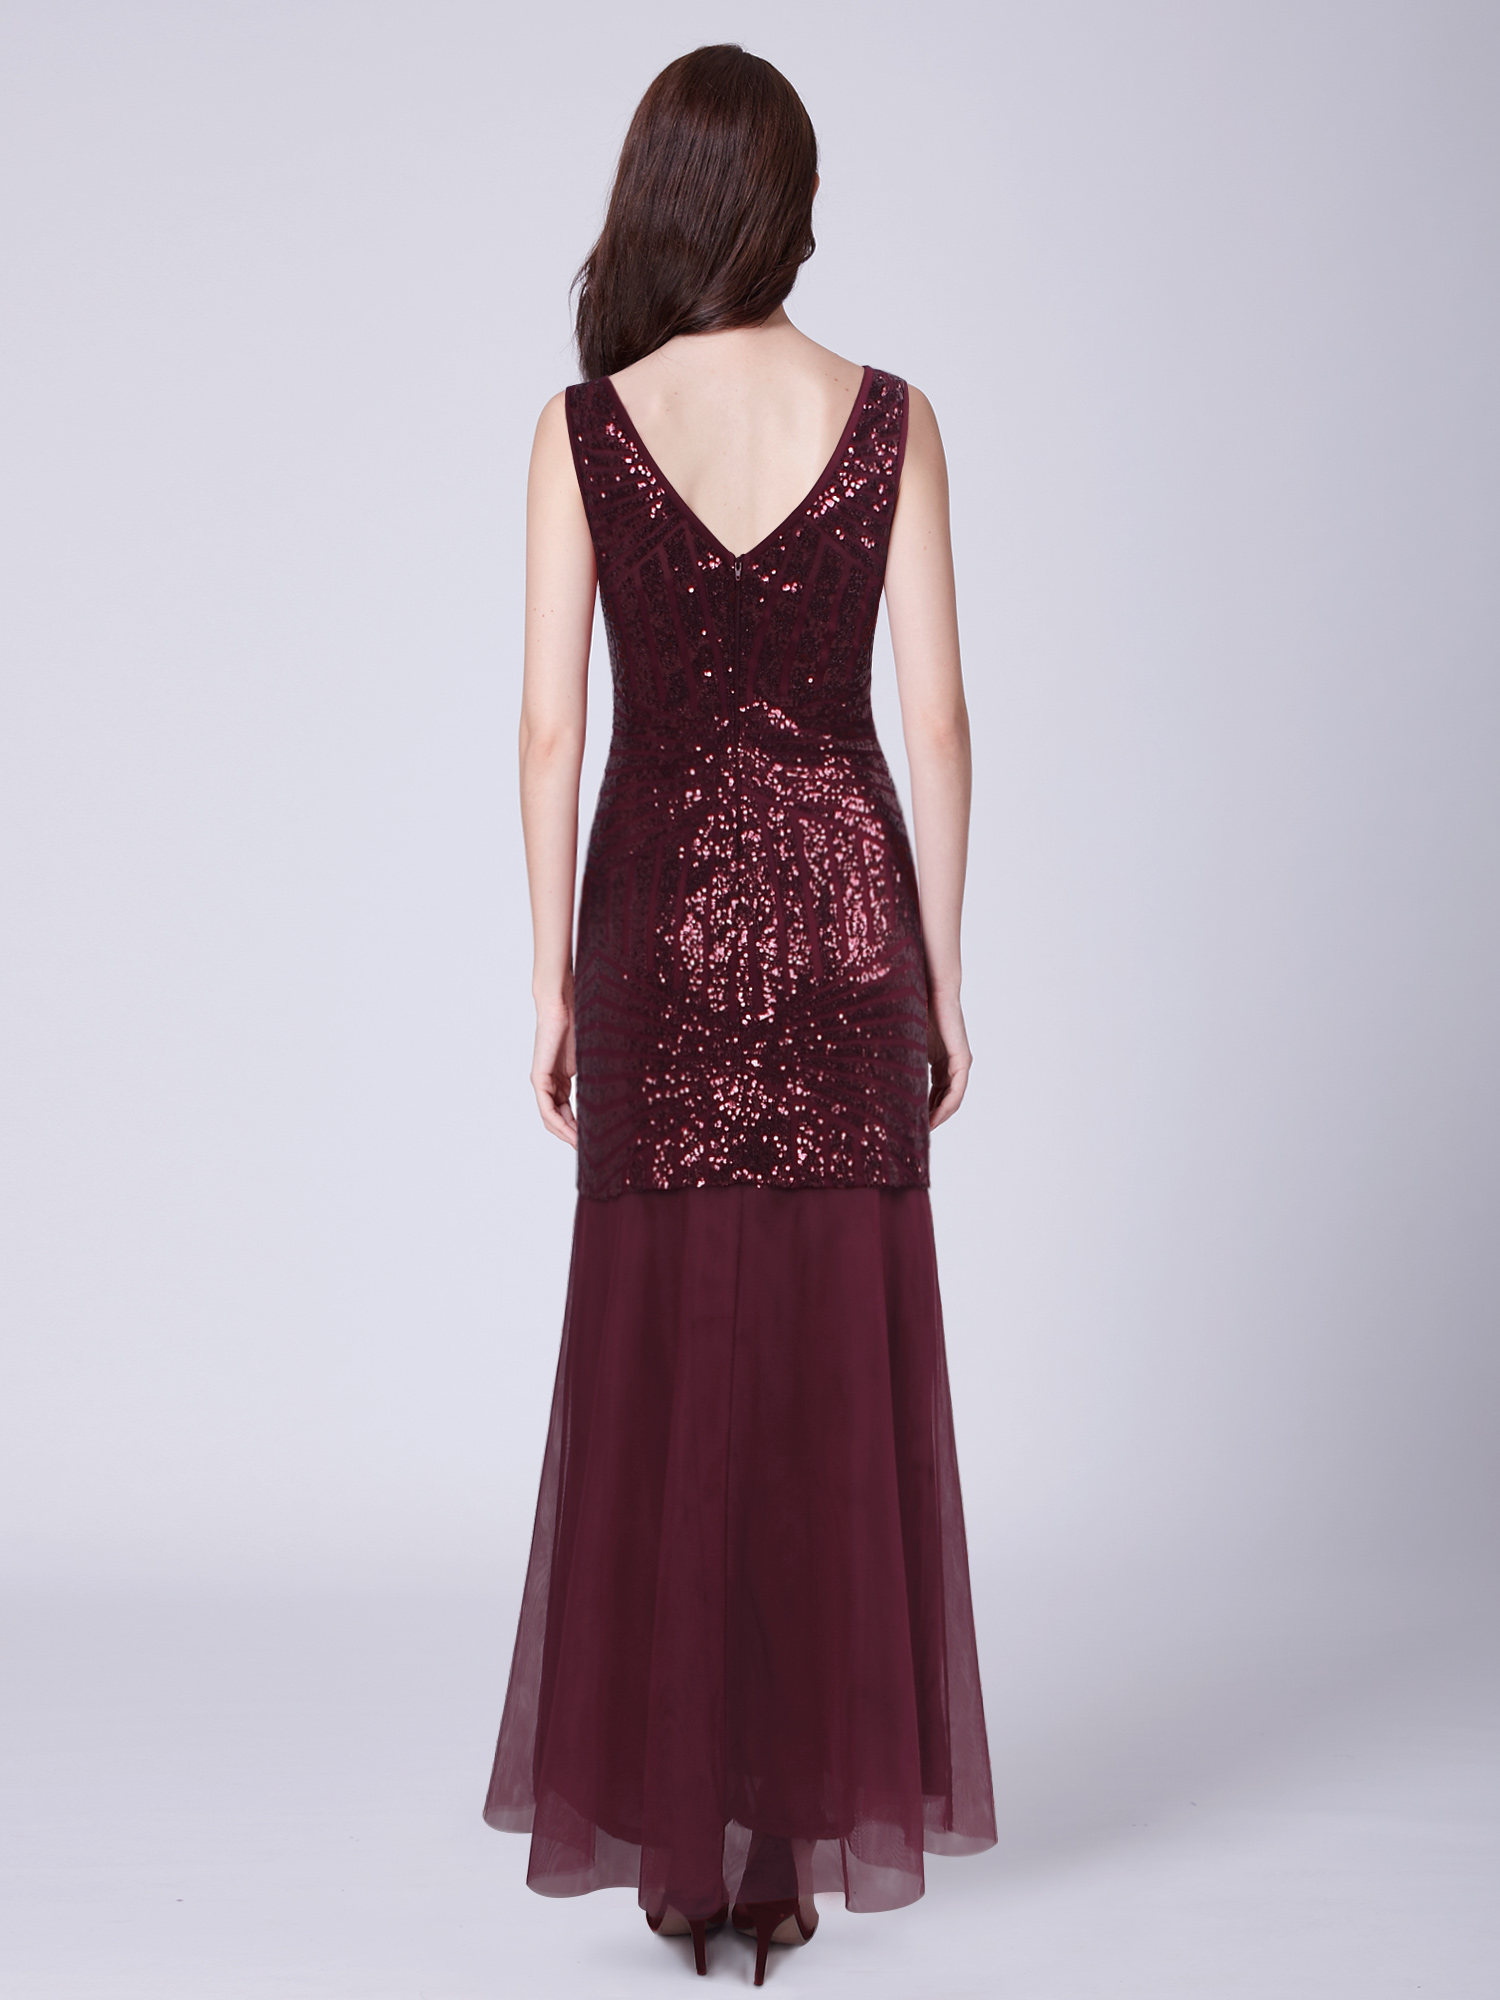 Ever-Pretty-Sequins-Evening-Dresses-Sparkling-Fishtail-Party-Dress-Gown-07649